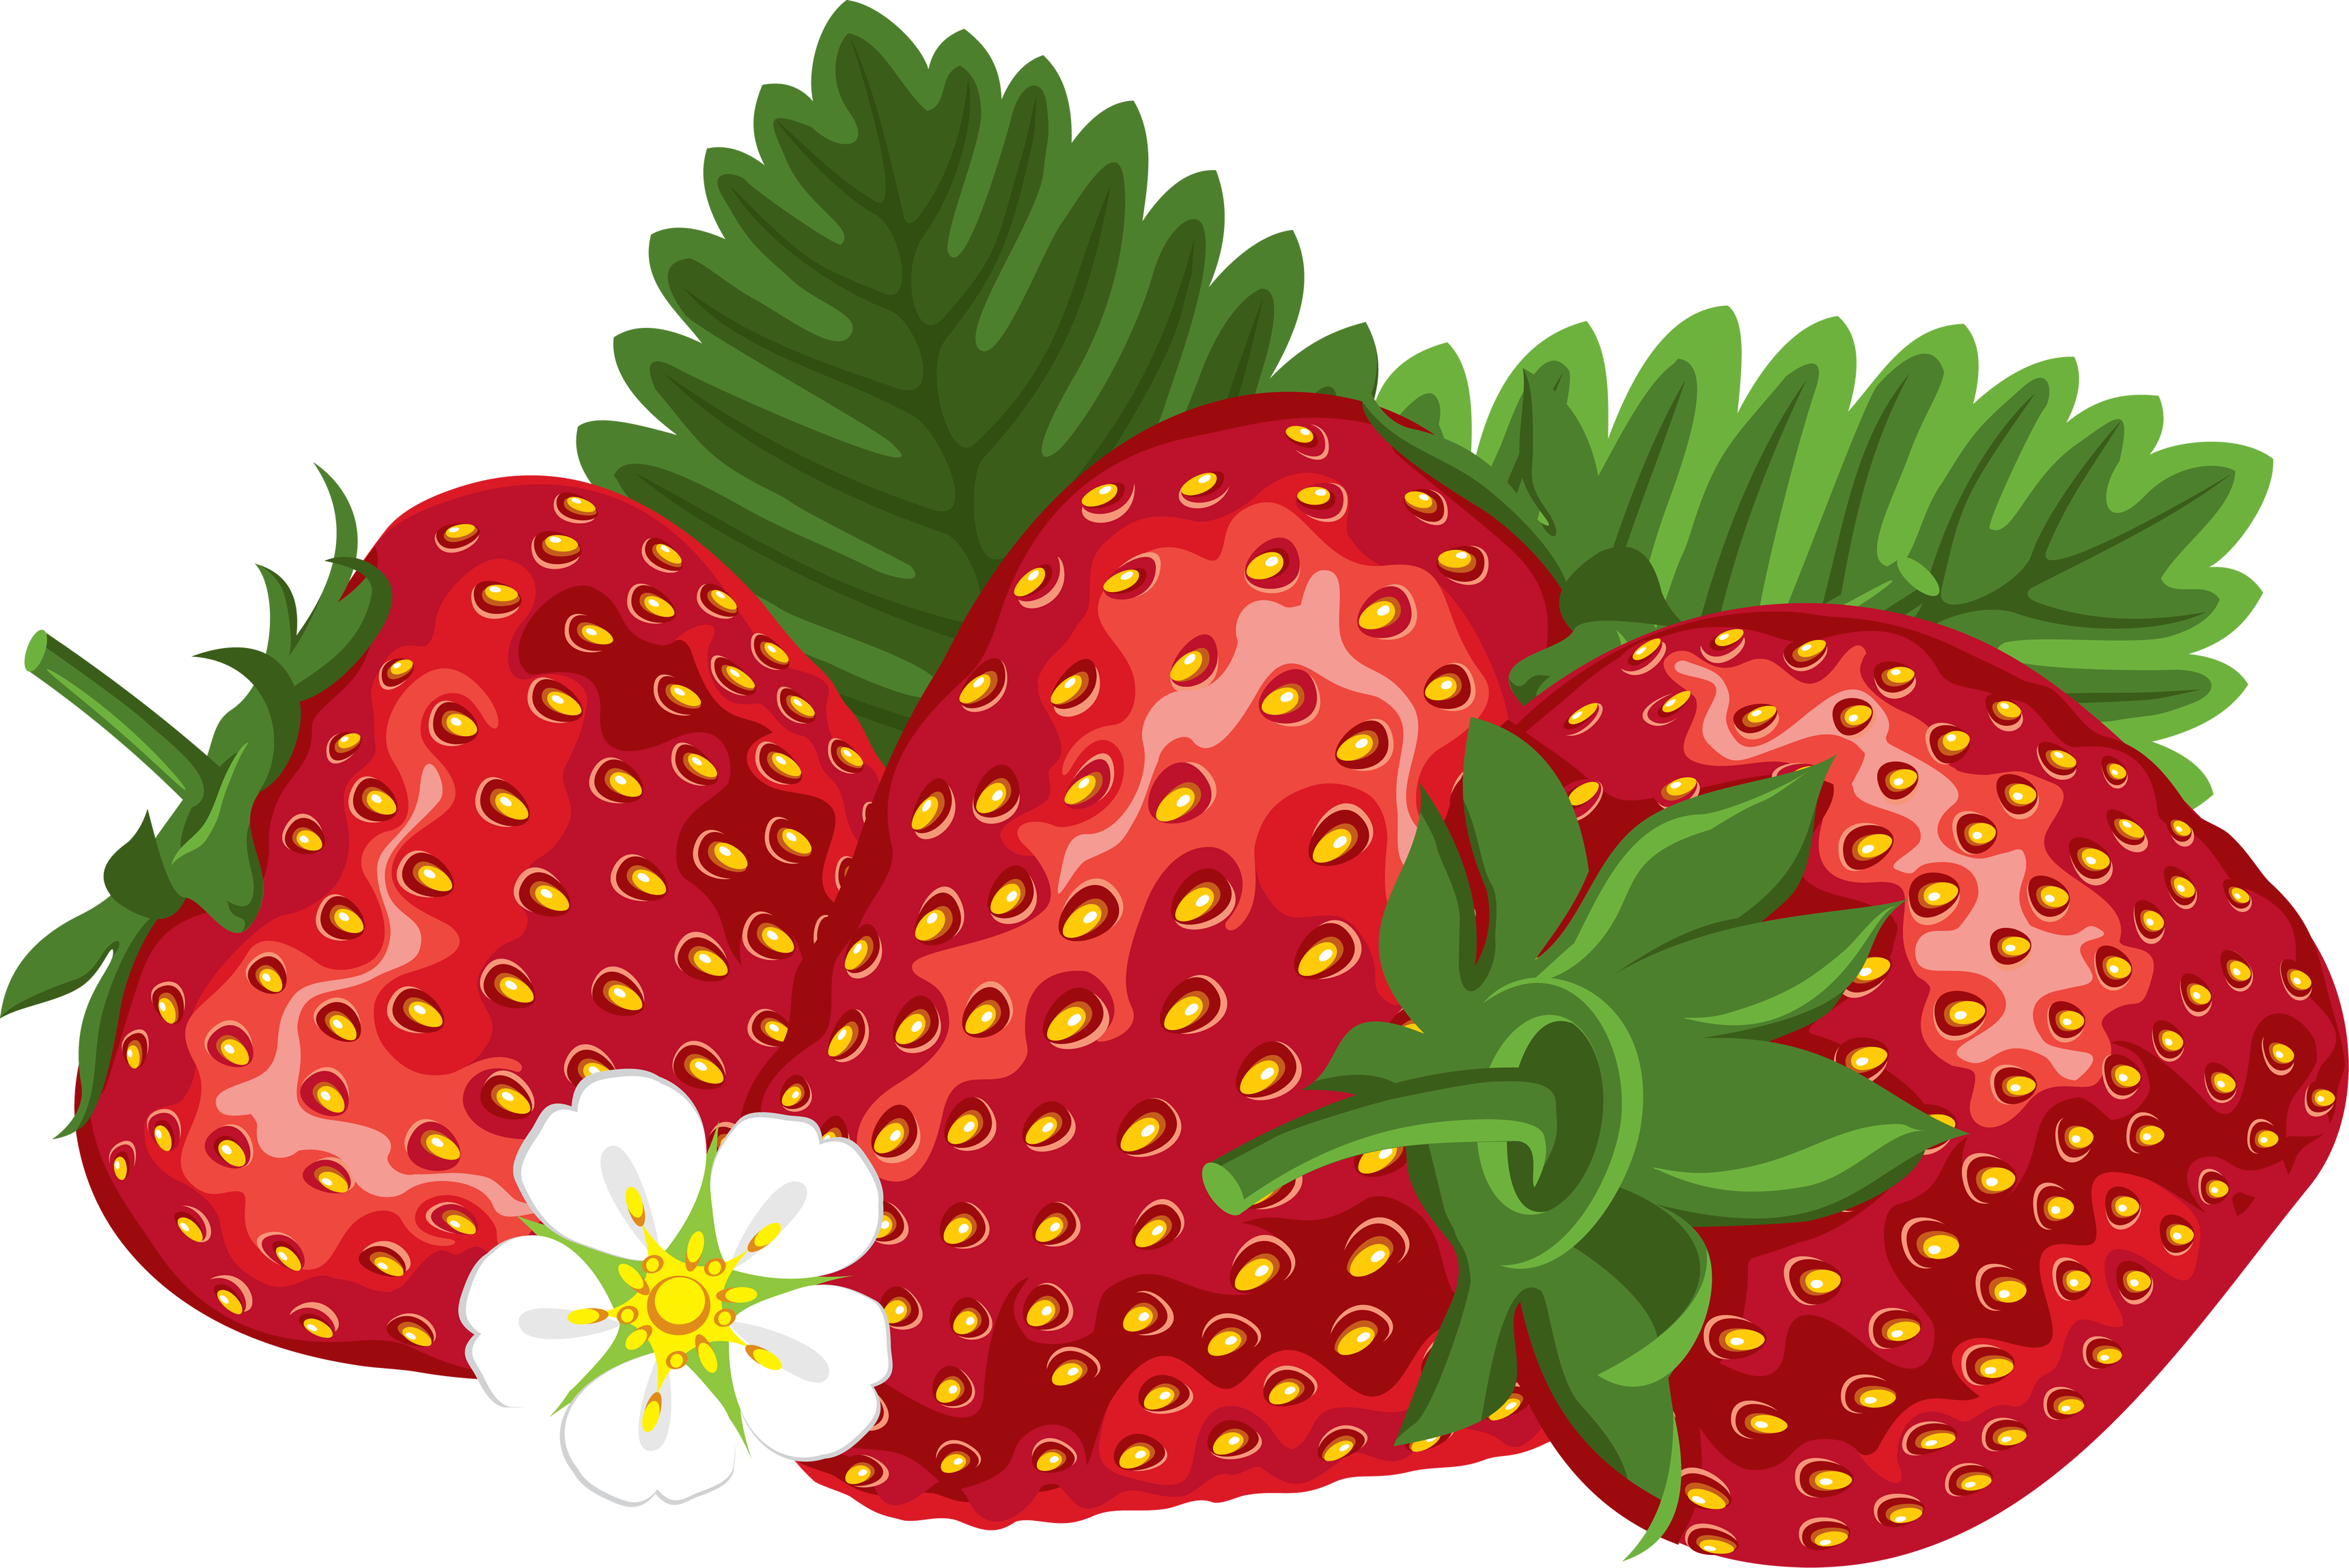 Strawberries clipart png. Strawberry image purepng free